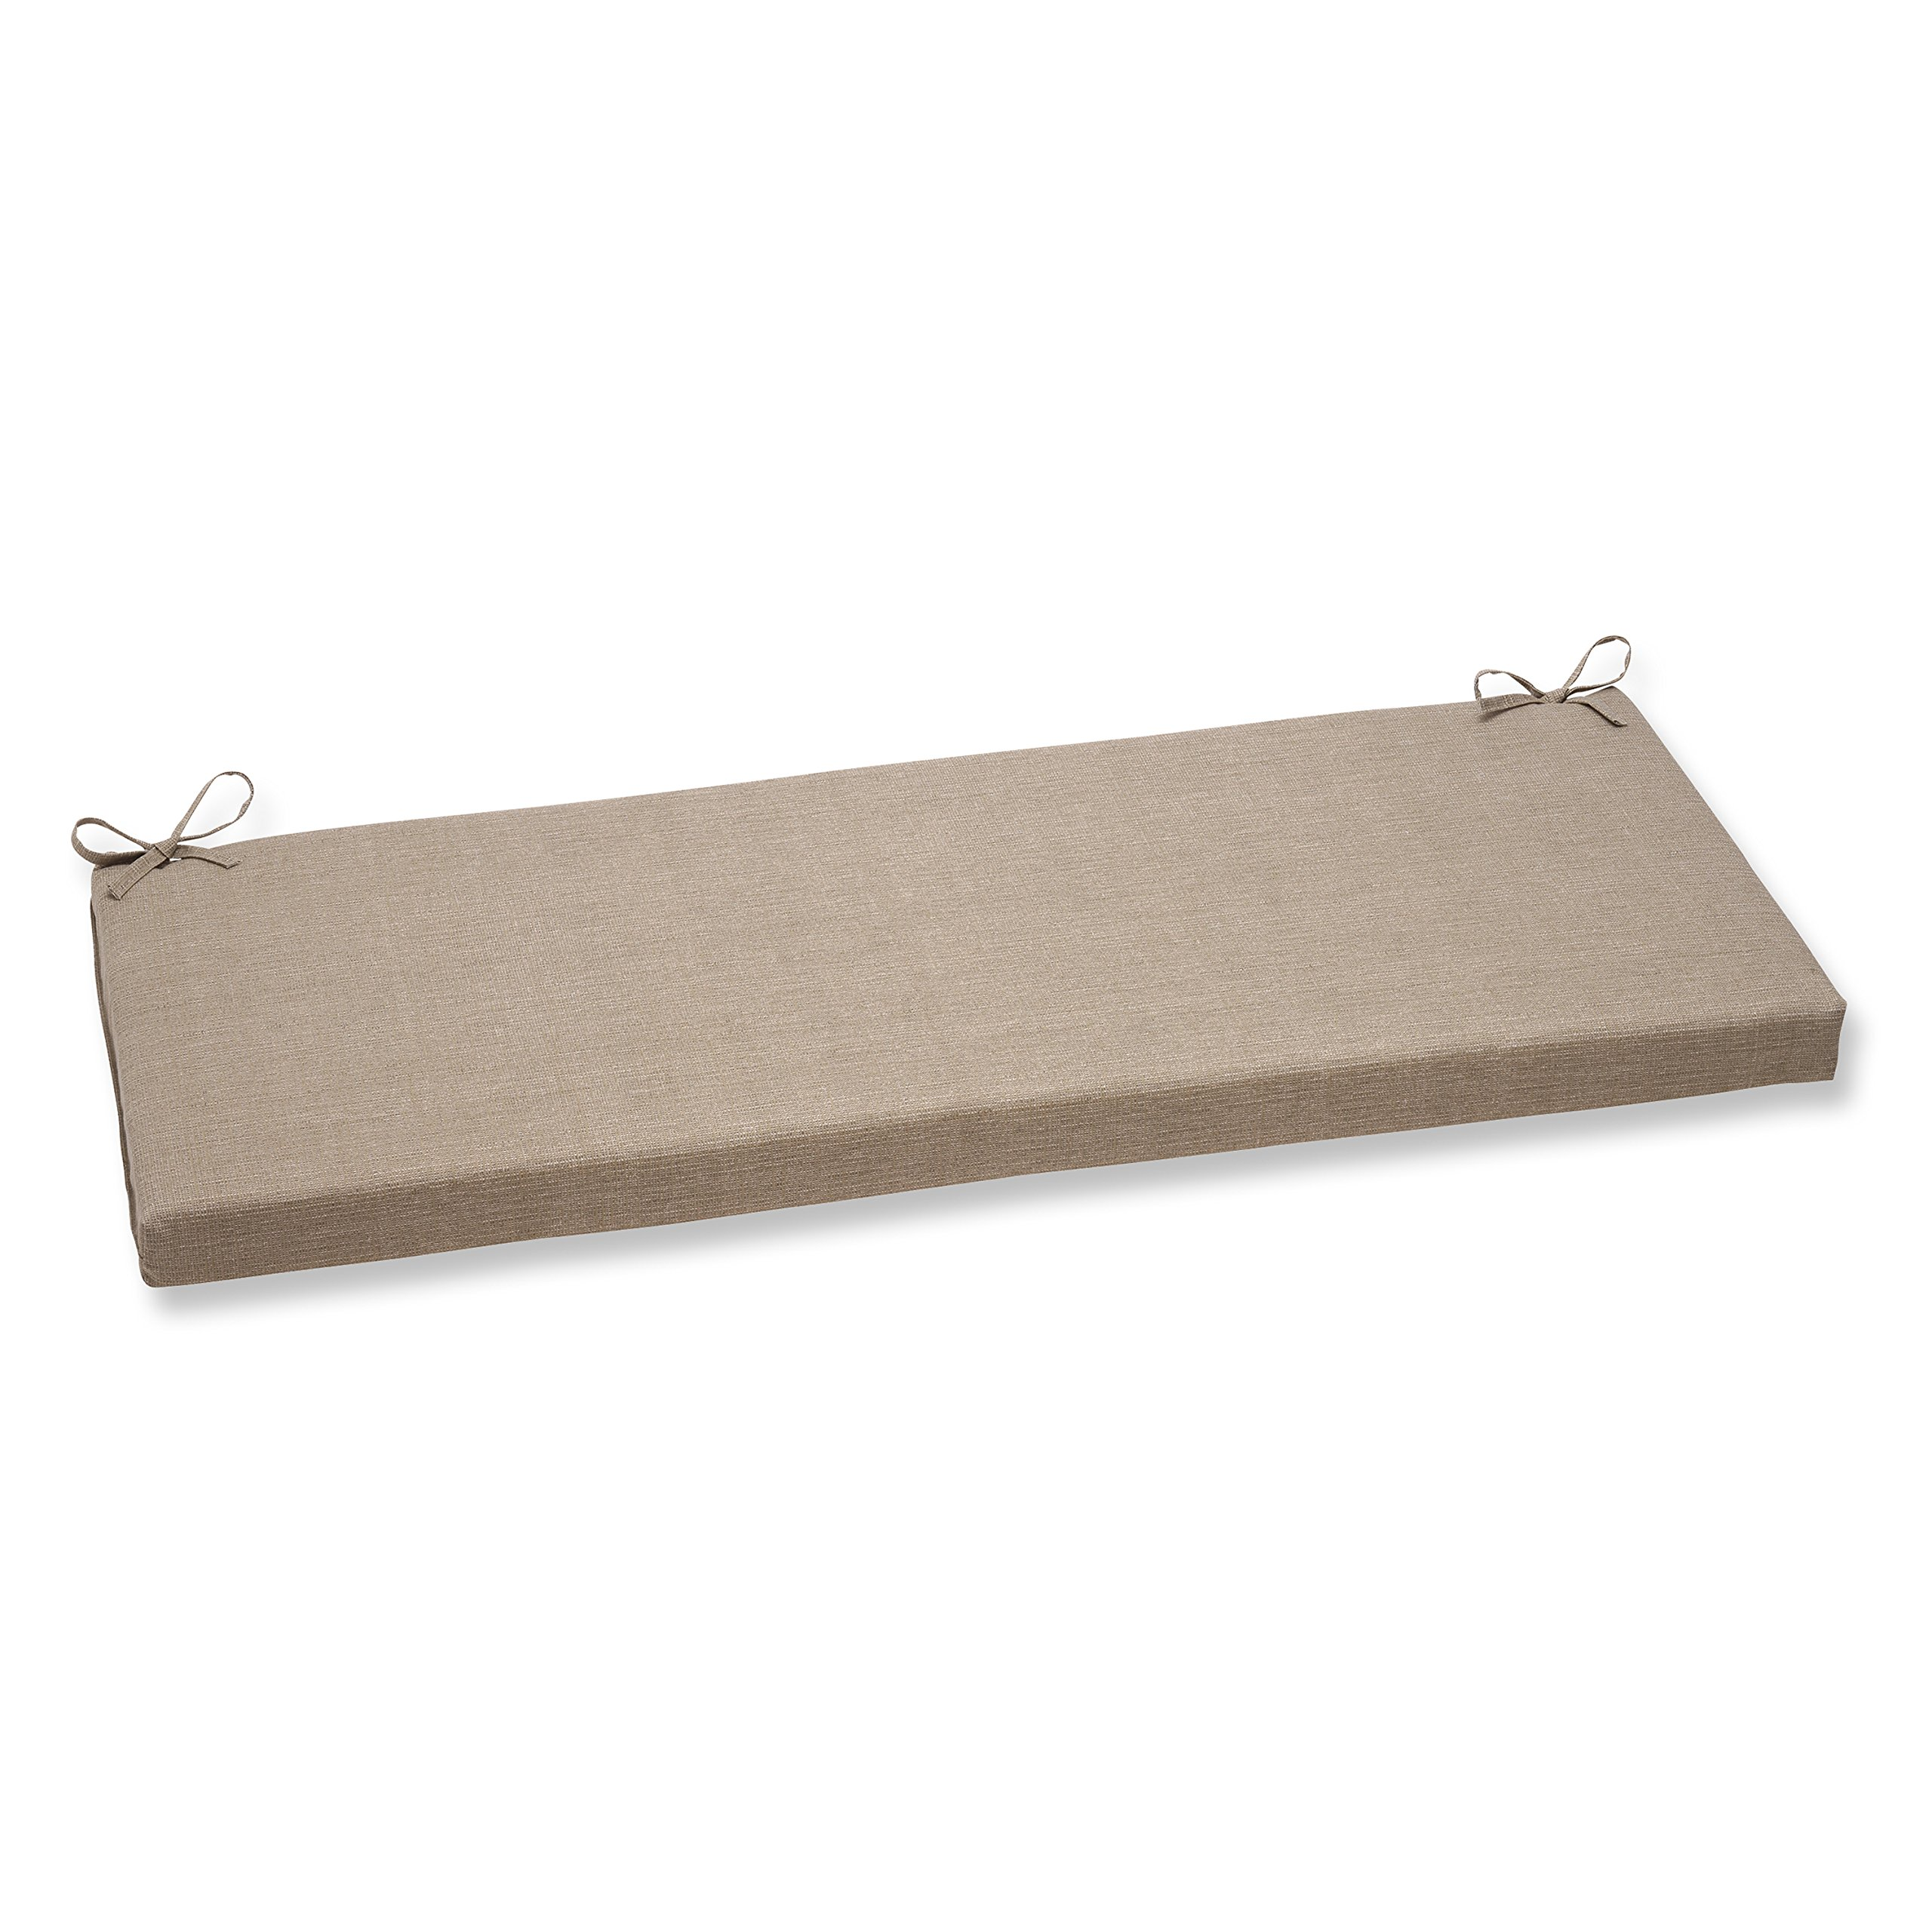 Pillow Perfect Monti Bench Cushion, Taupe